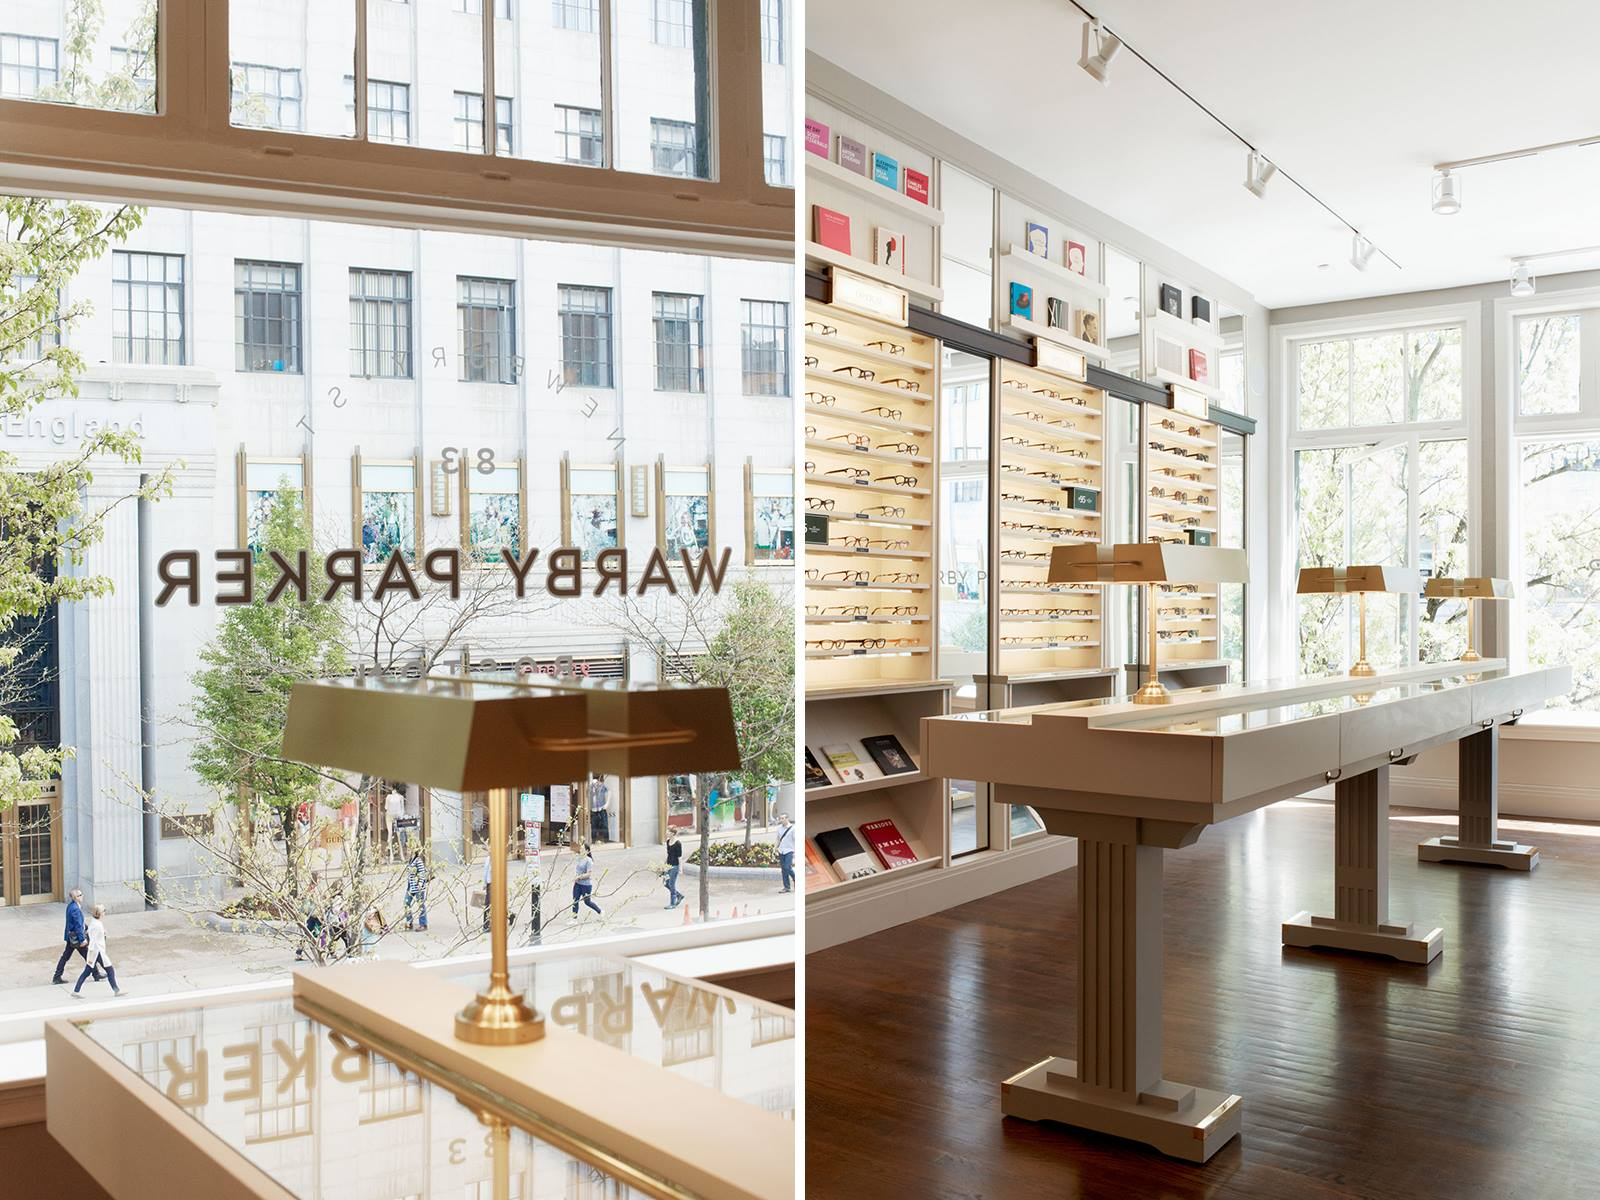 """Warby Parker's Boston showroom via <a href=""""https://www.facebook.com/photo.php?fbid=535332856518405&amp;set=a.535332853185072.1073741828.532997580085266&amp;type=1&amp;theater"""">Facebook</a>"""